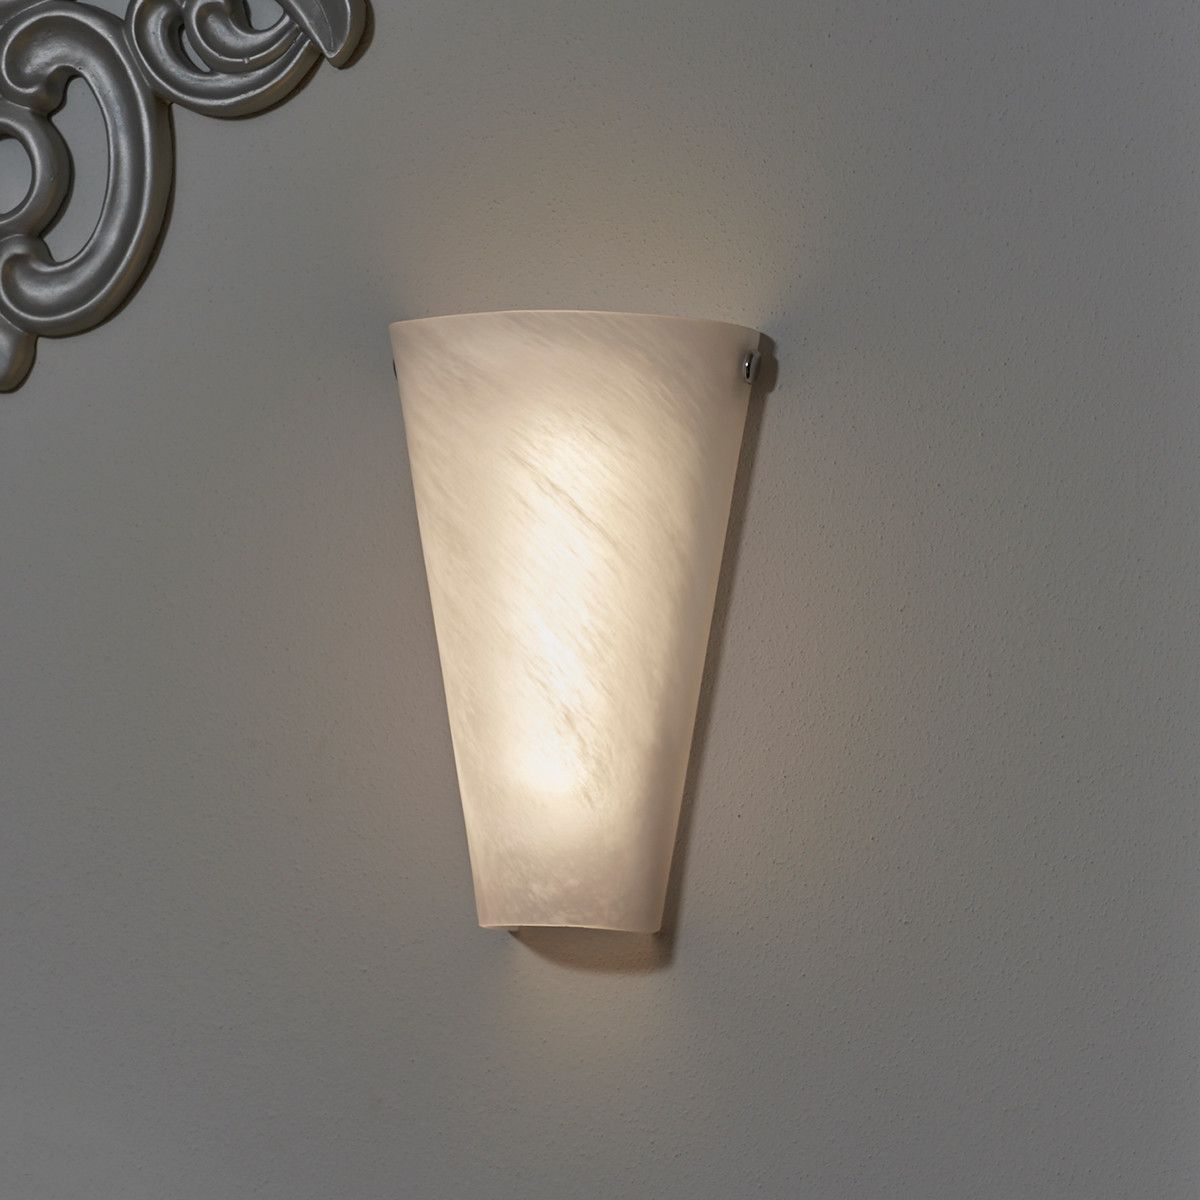 It 39 S Exciting Lighting Conical Wall Sconce Wall Sconces Sconces Wall Lights